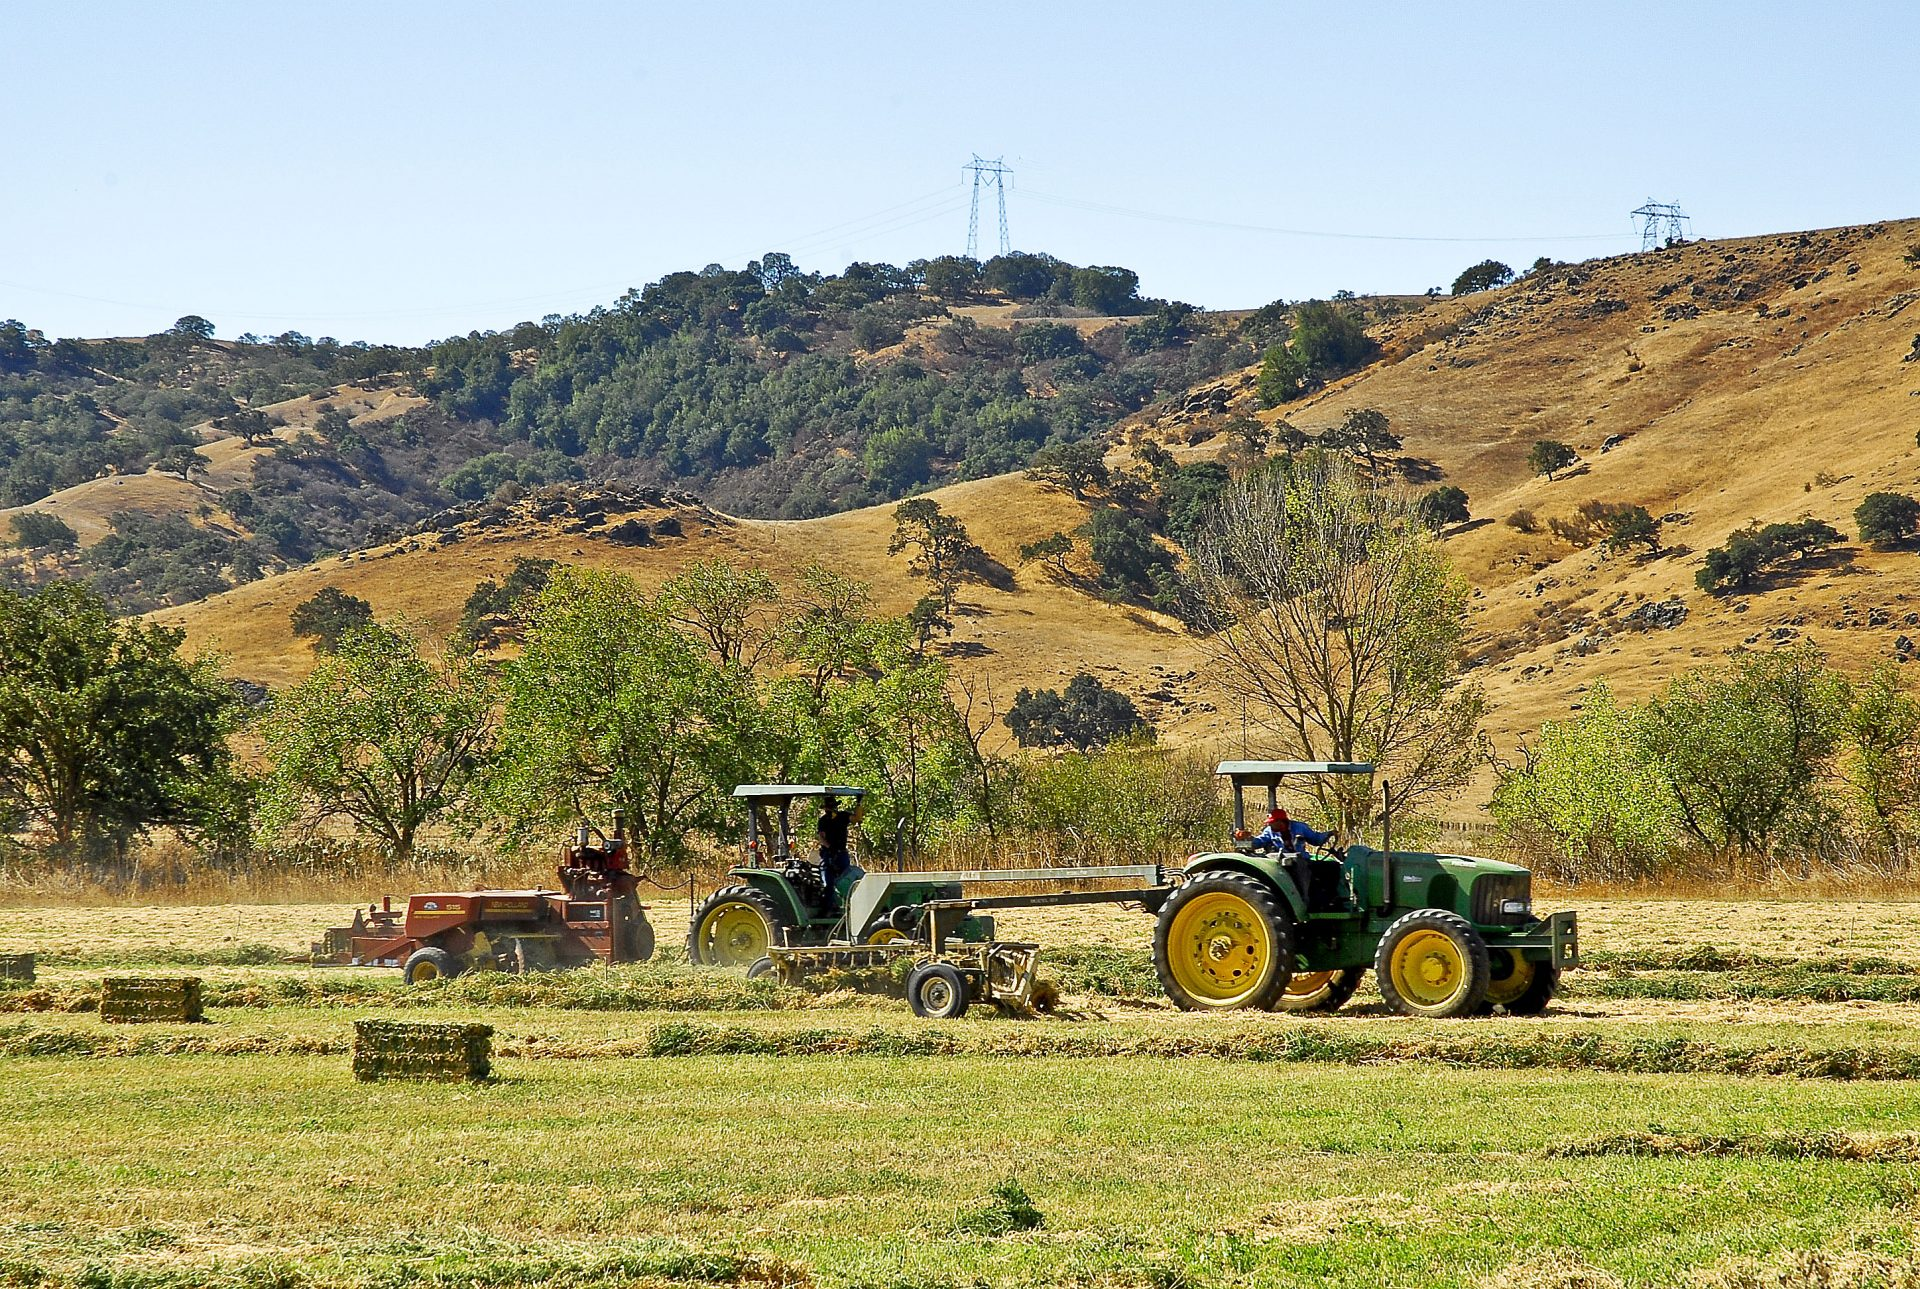 Supervisors Request Options to Fund Farmland Preservation